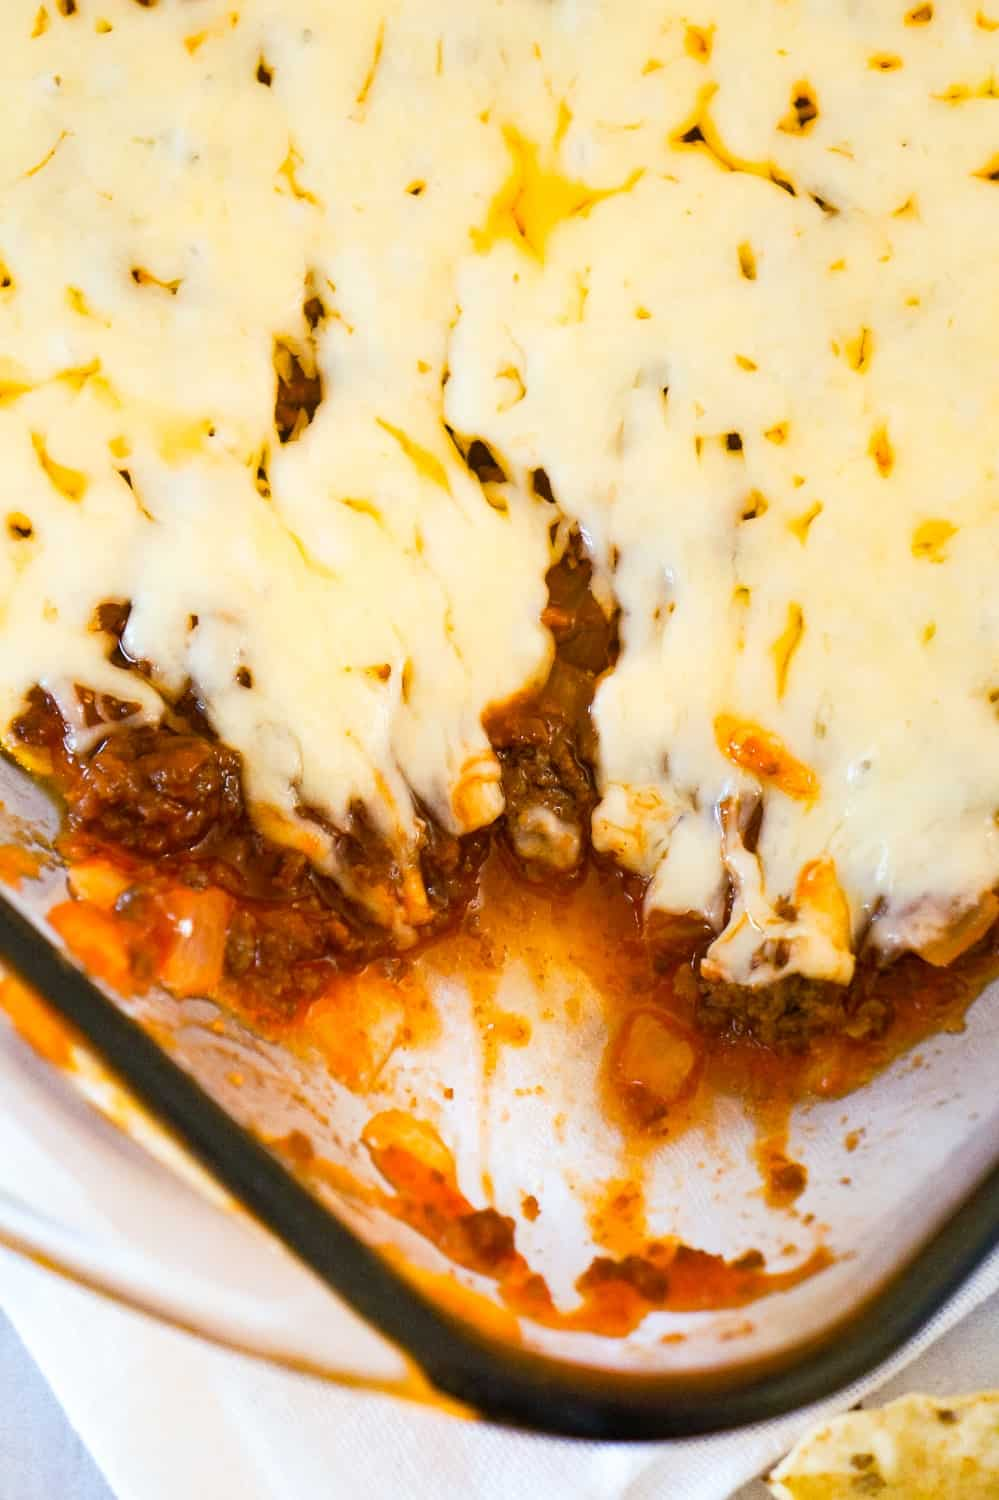 Sloppy Joe Dip is a delicious party dip recipe loaded with ground beef and dripping with melted cheese. This dip, with all the flavours of the classic sloppy joe, is perfect for dipping chips and crackers.